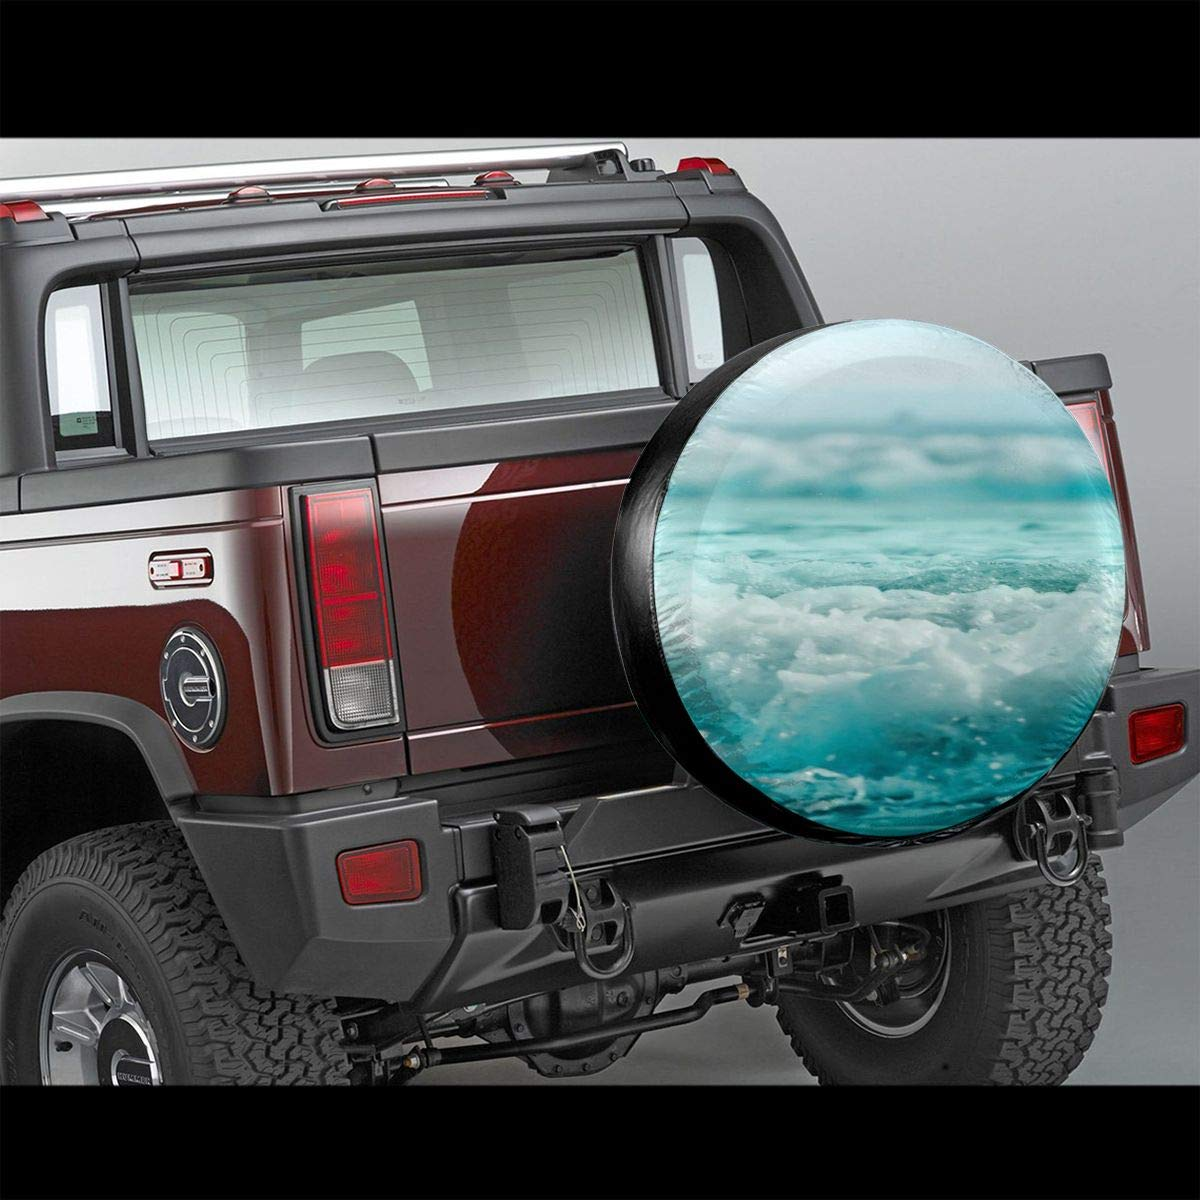 Blue Sea Wave Spare Tire Cover Waterproof Wheel Tire Cover Corrosion Protection Universal Tire Cover Wheel Protectors UV Blocking Seasonal Tire Covers for Jeeps Trailers RV SUV Trucks Camper